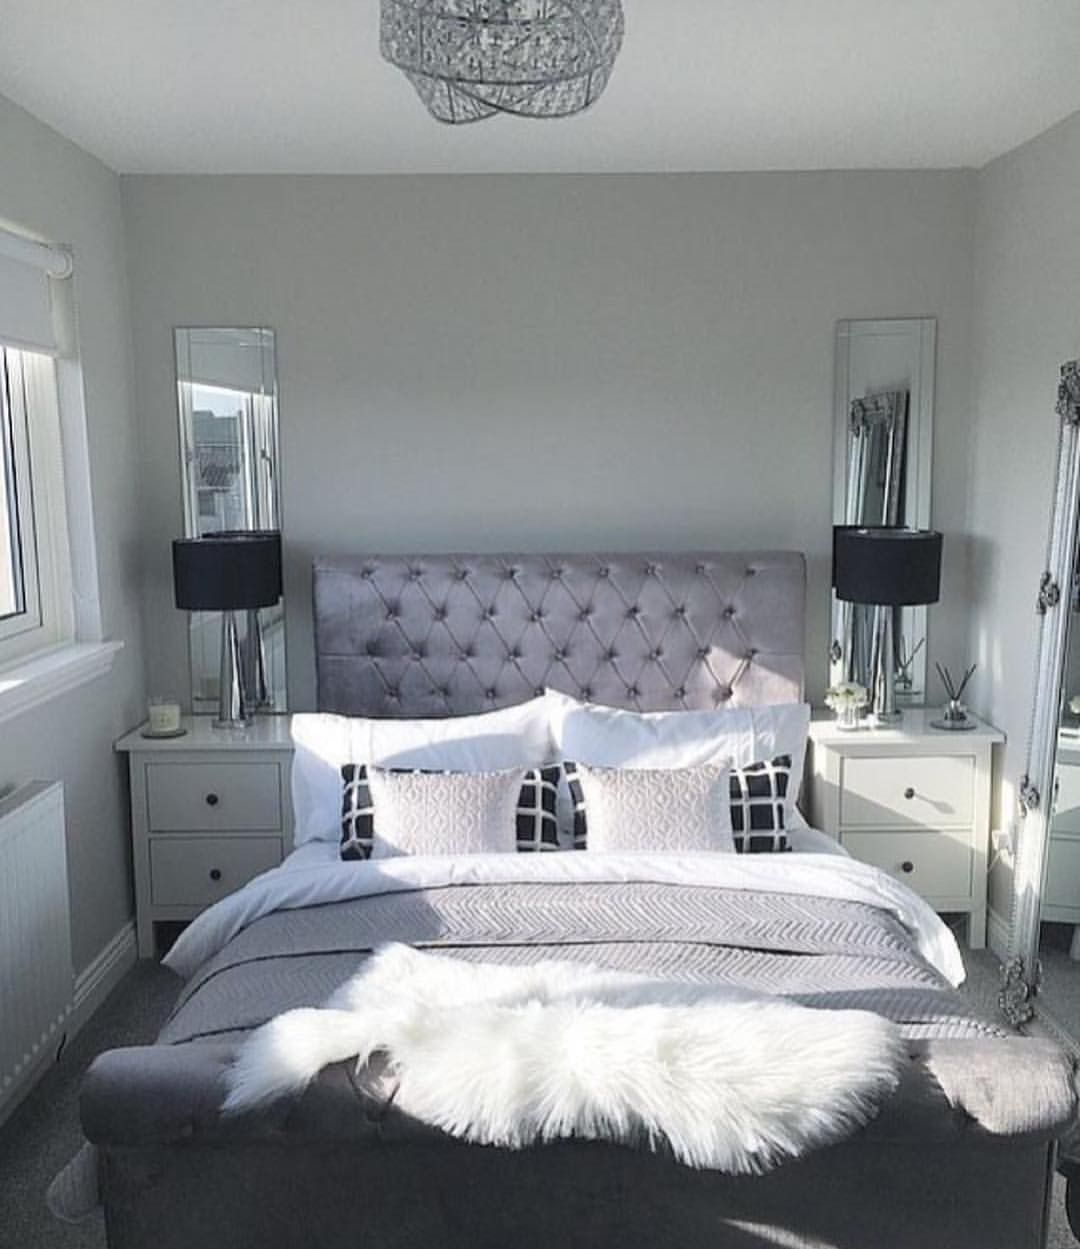 Cvincii Glam Bedroom Decor Room Ideas Bedroom Bedroom Decor